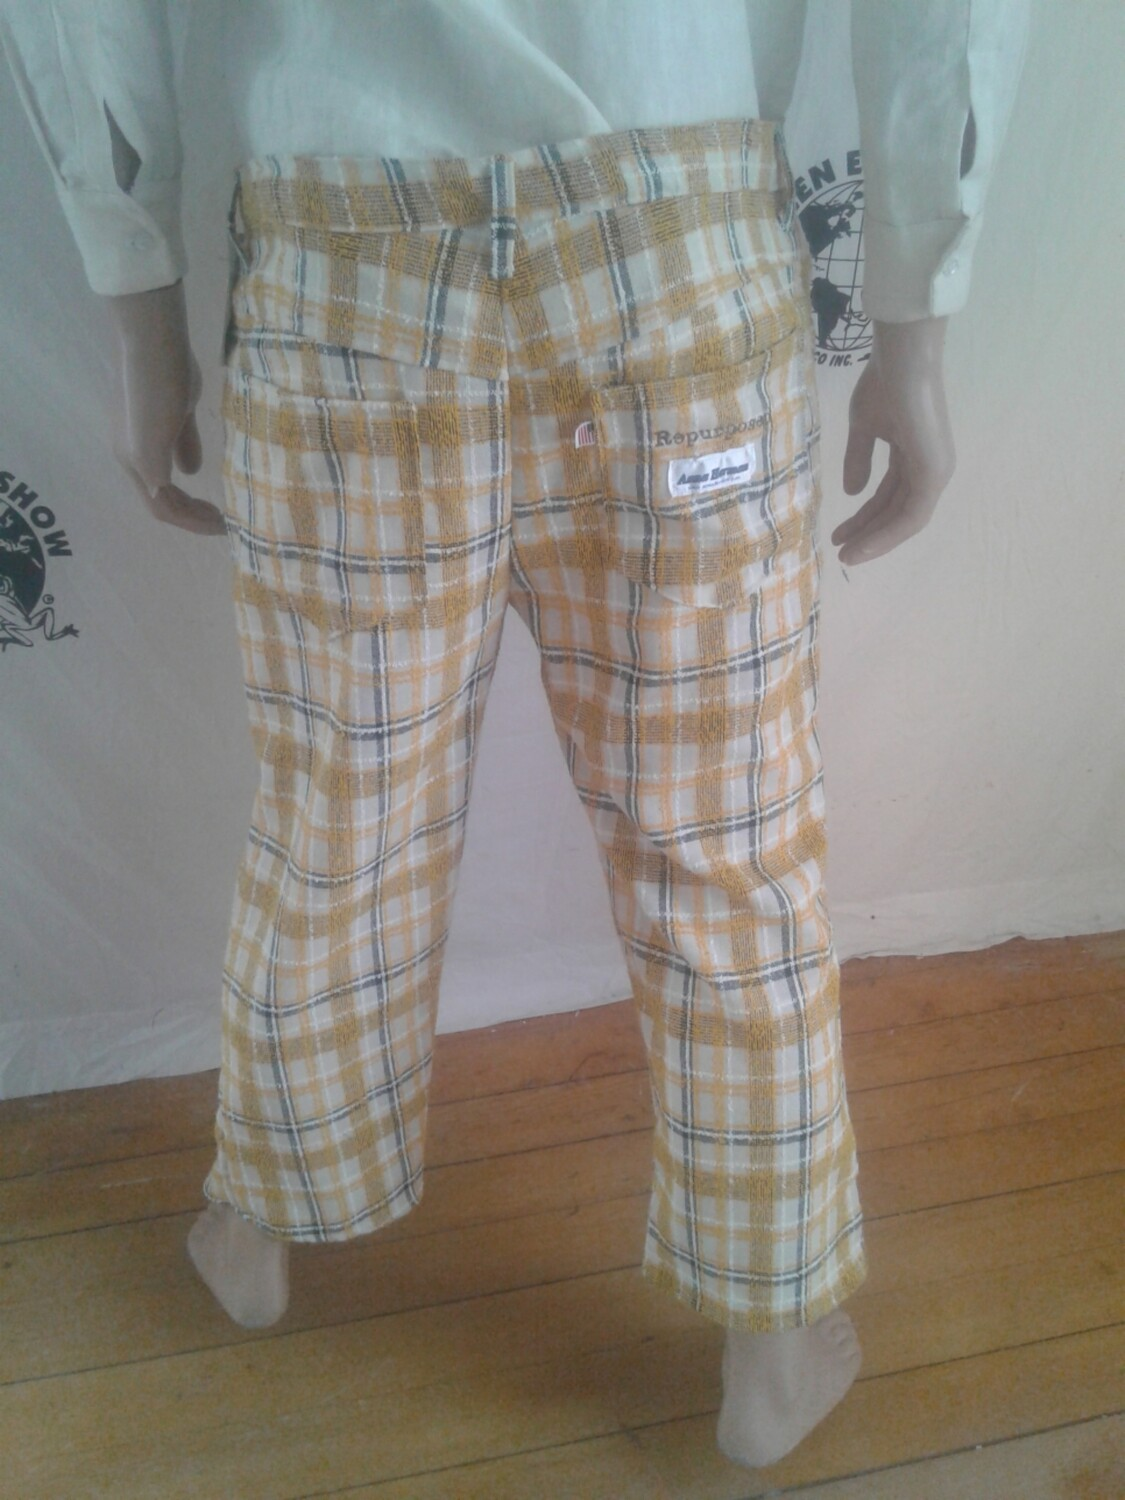 Plaid jeans Shorts 37 X 24 made in USA Hermans